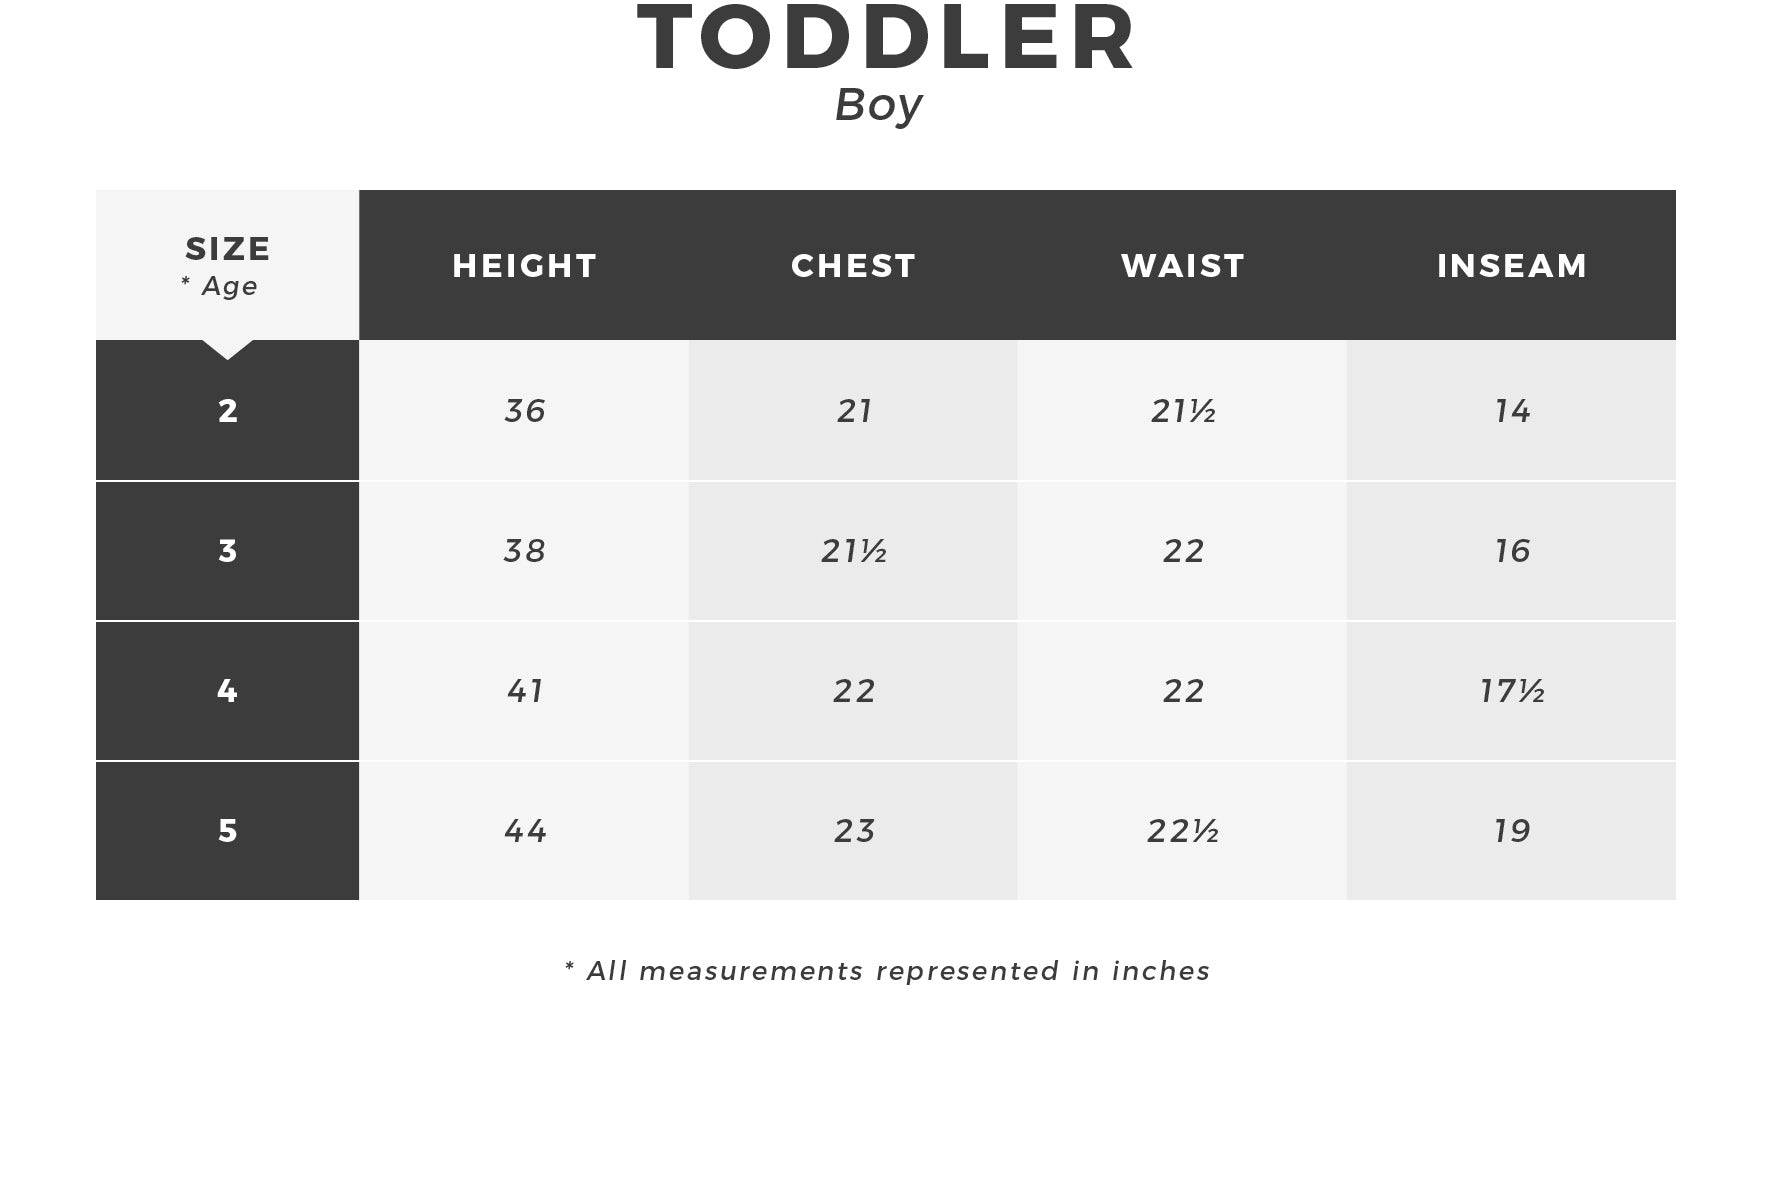 Toddler Boy Size Chart